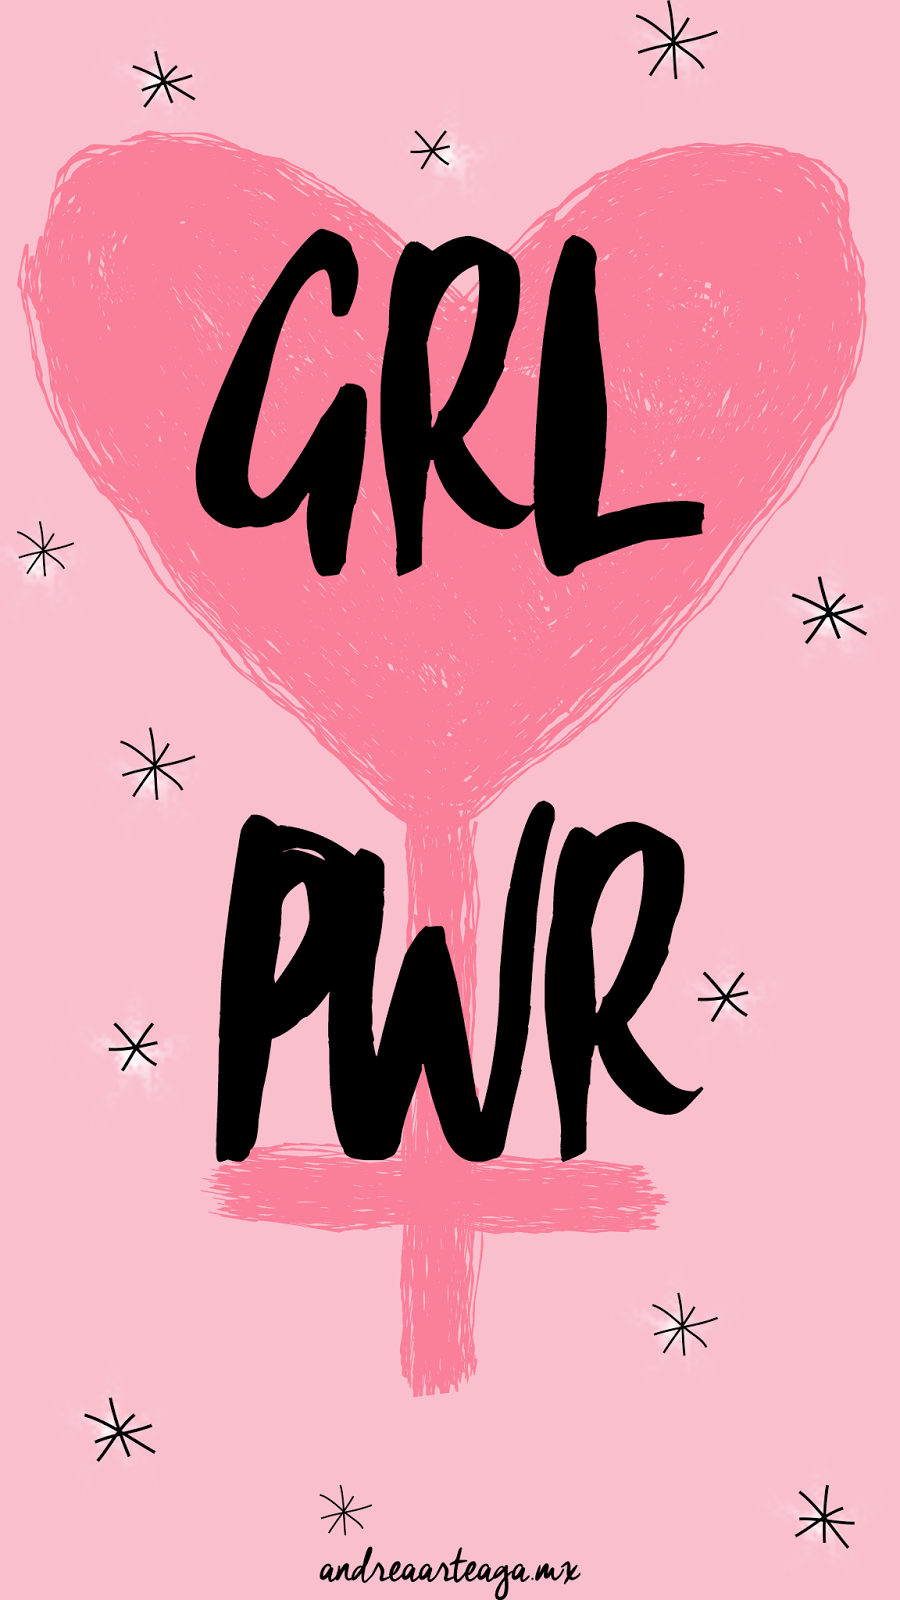 andrea arteaga ♡: wallpapers girl power | fondos in 2018